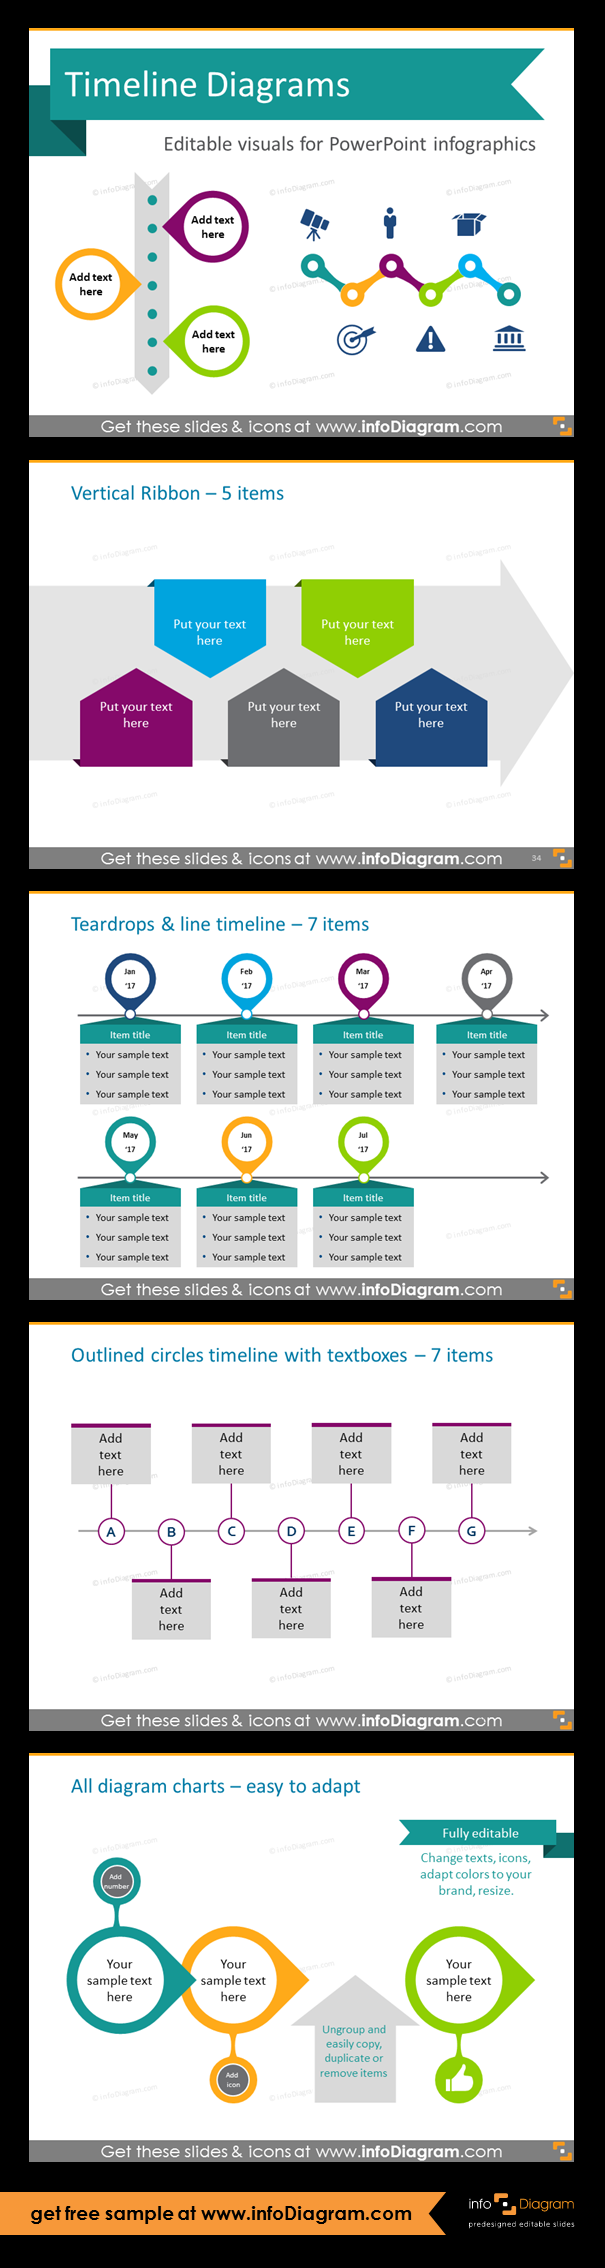 Template Slides For Timeline Diagrams And Time Infographics